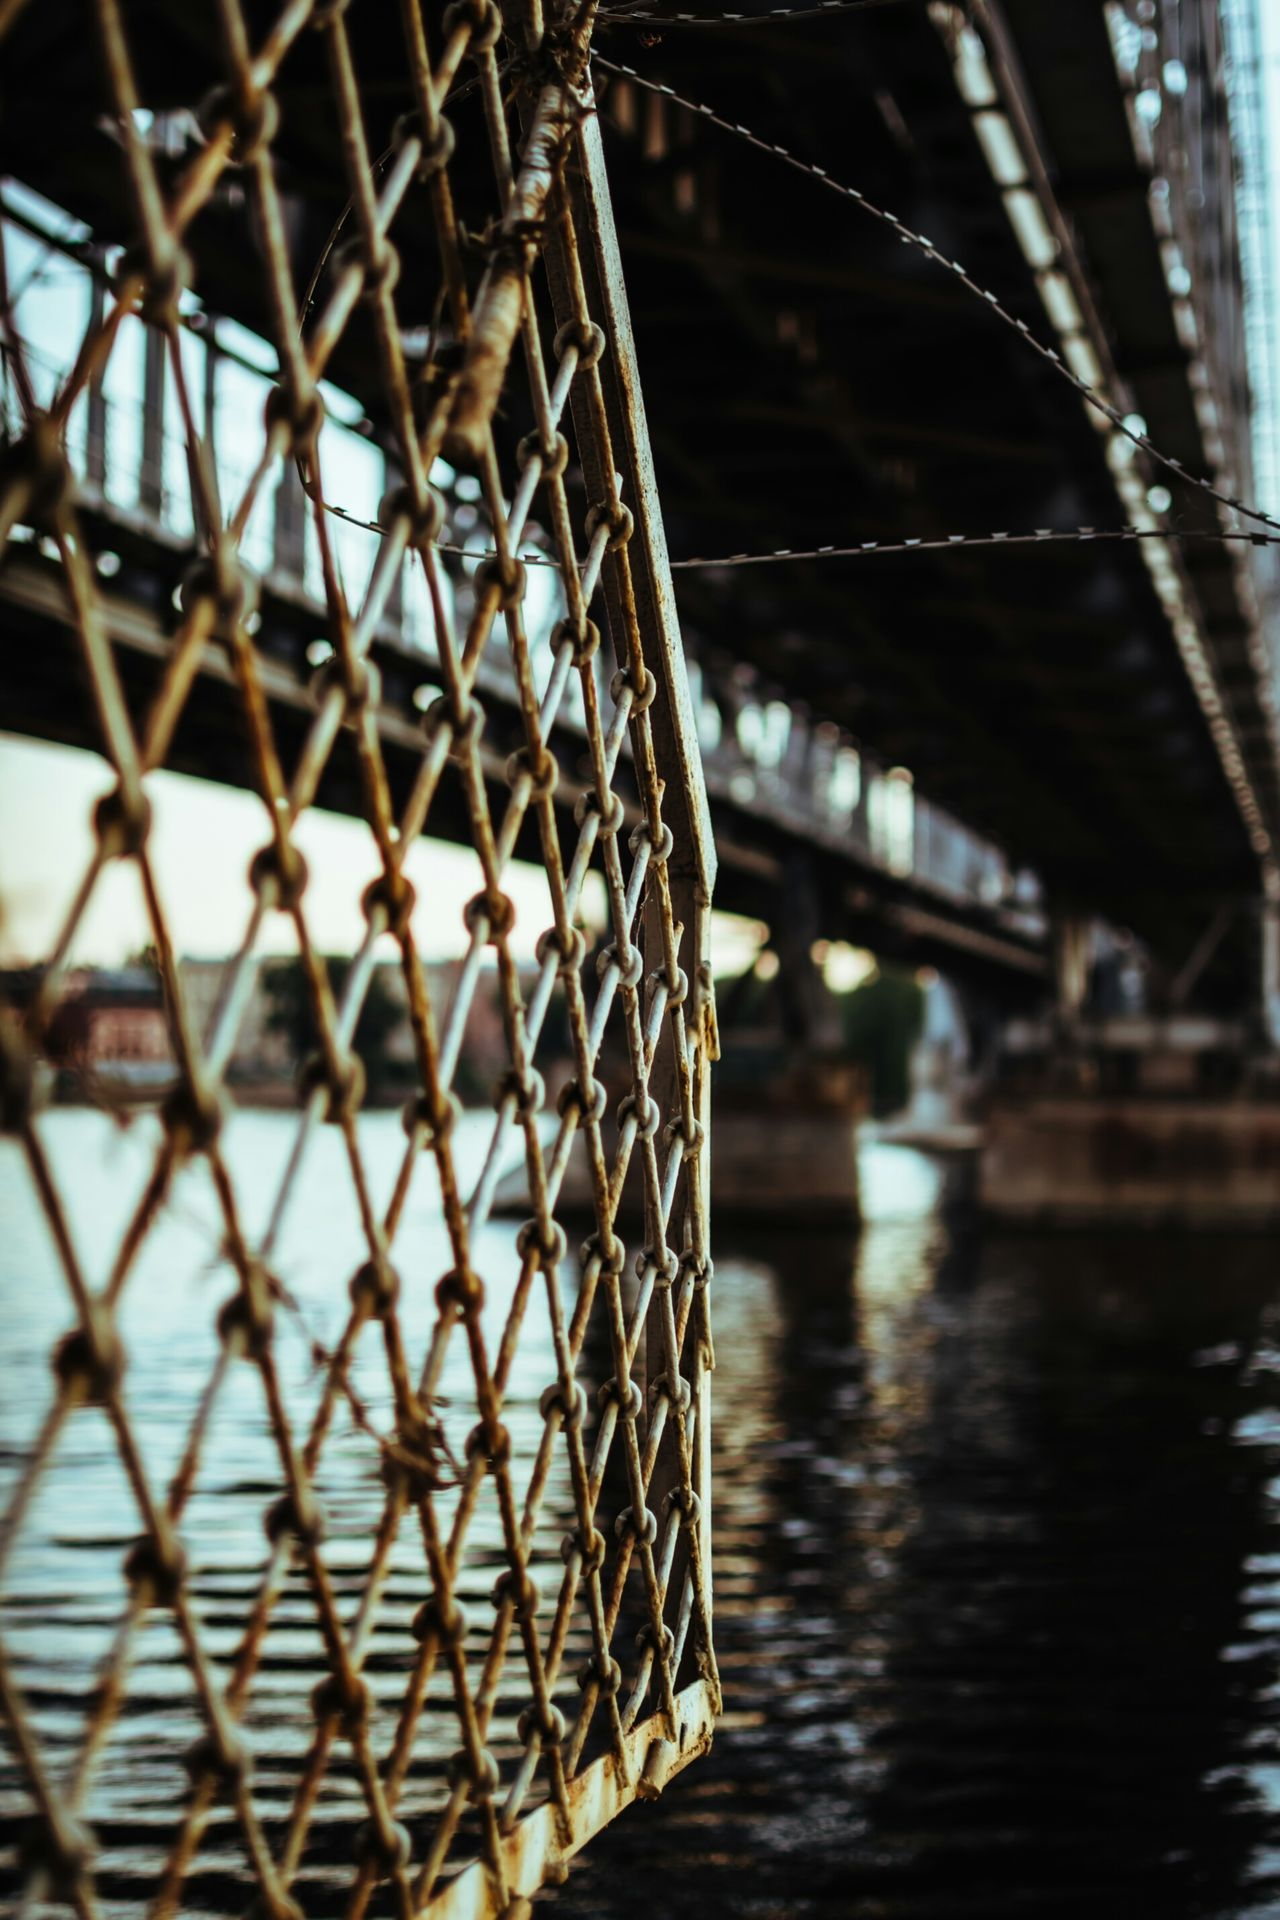 Architecture VSCO Cam Cityscapes City Bridge Bridges Spb Urbanexploration